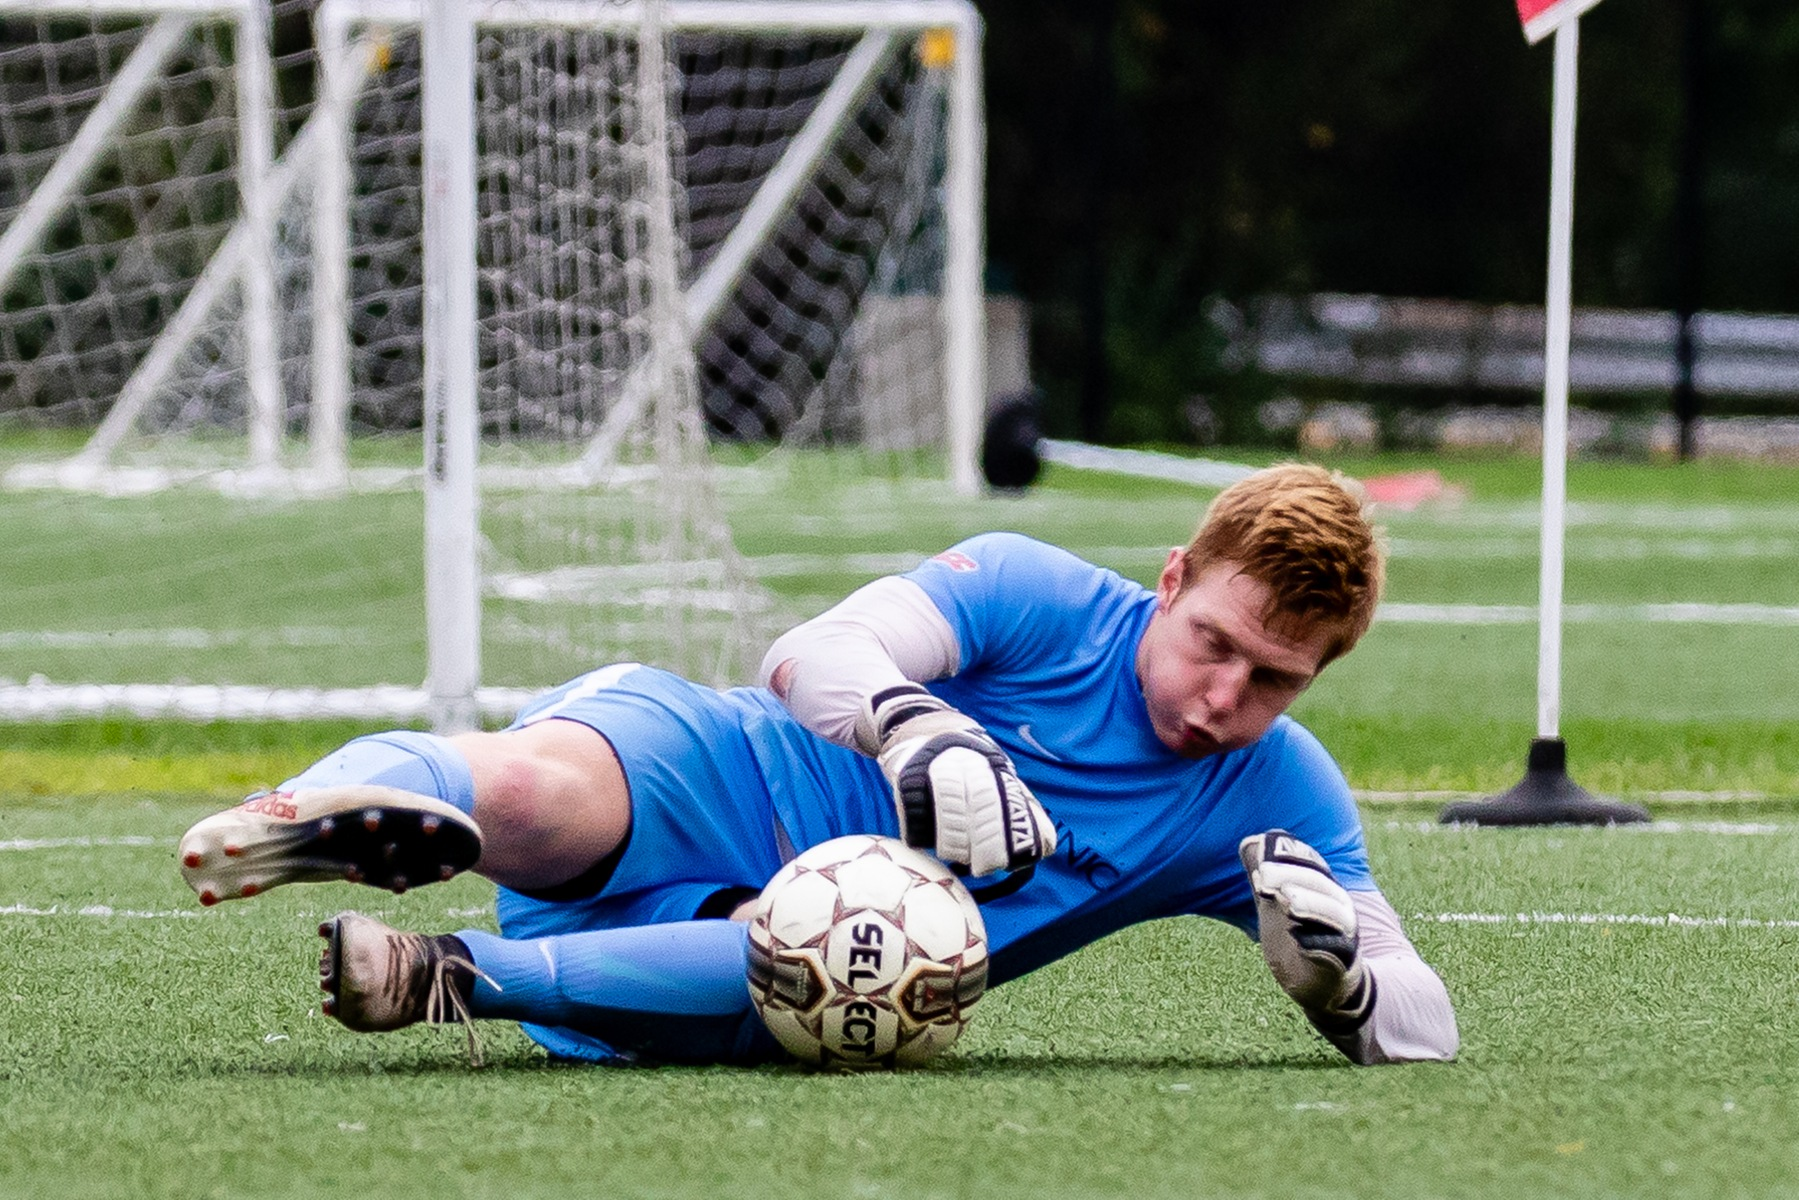 COUGARS EDGE MEN'S SOCCER IN OVERTIME